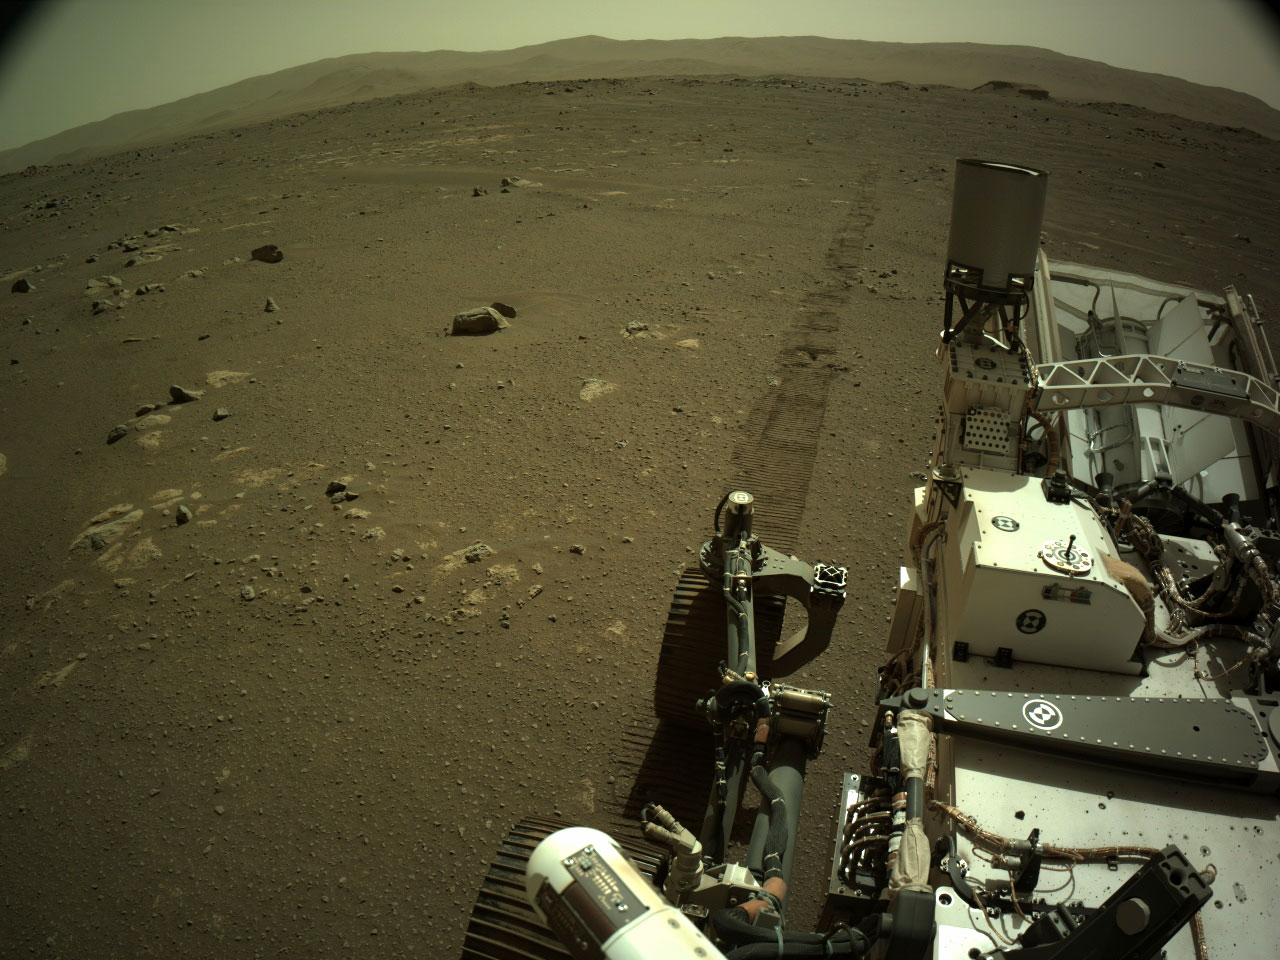 Image taken by Perseverance after driving with rover tracks behind it.